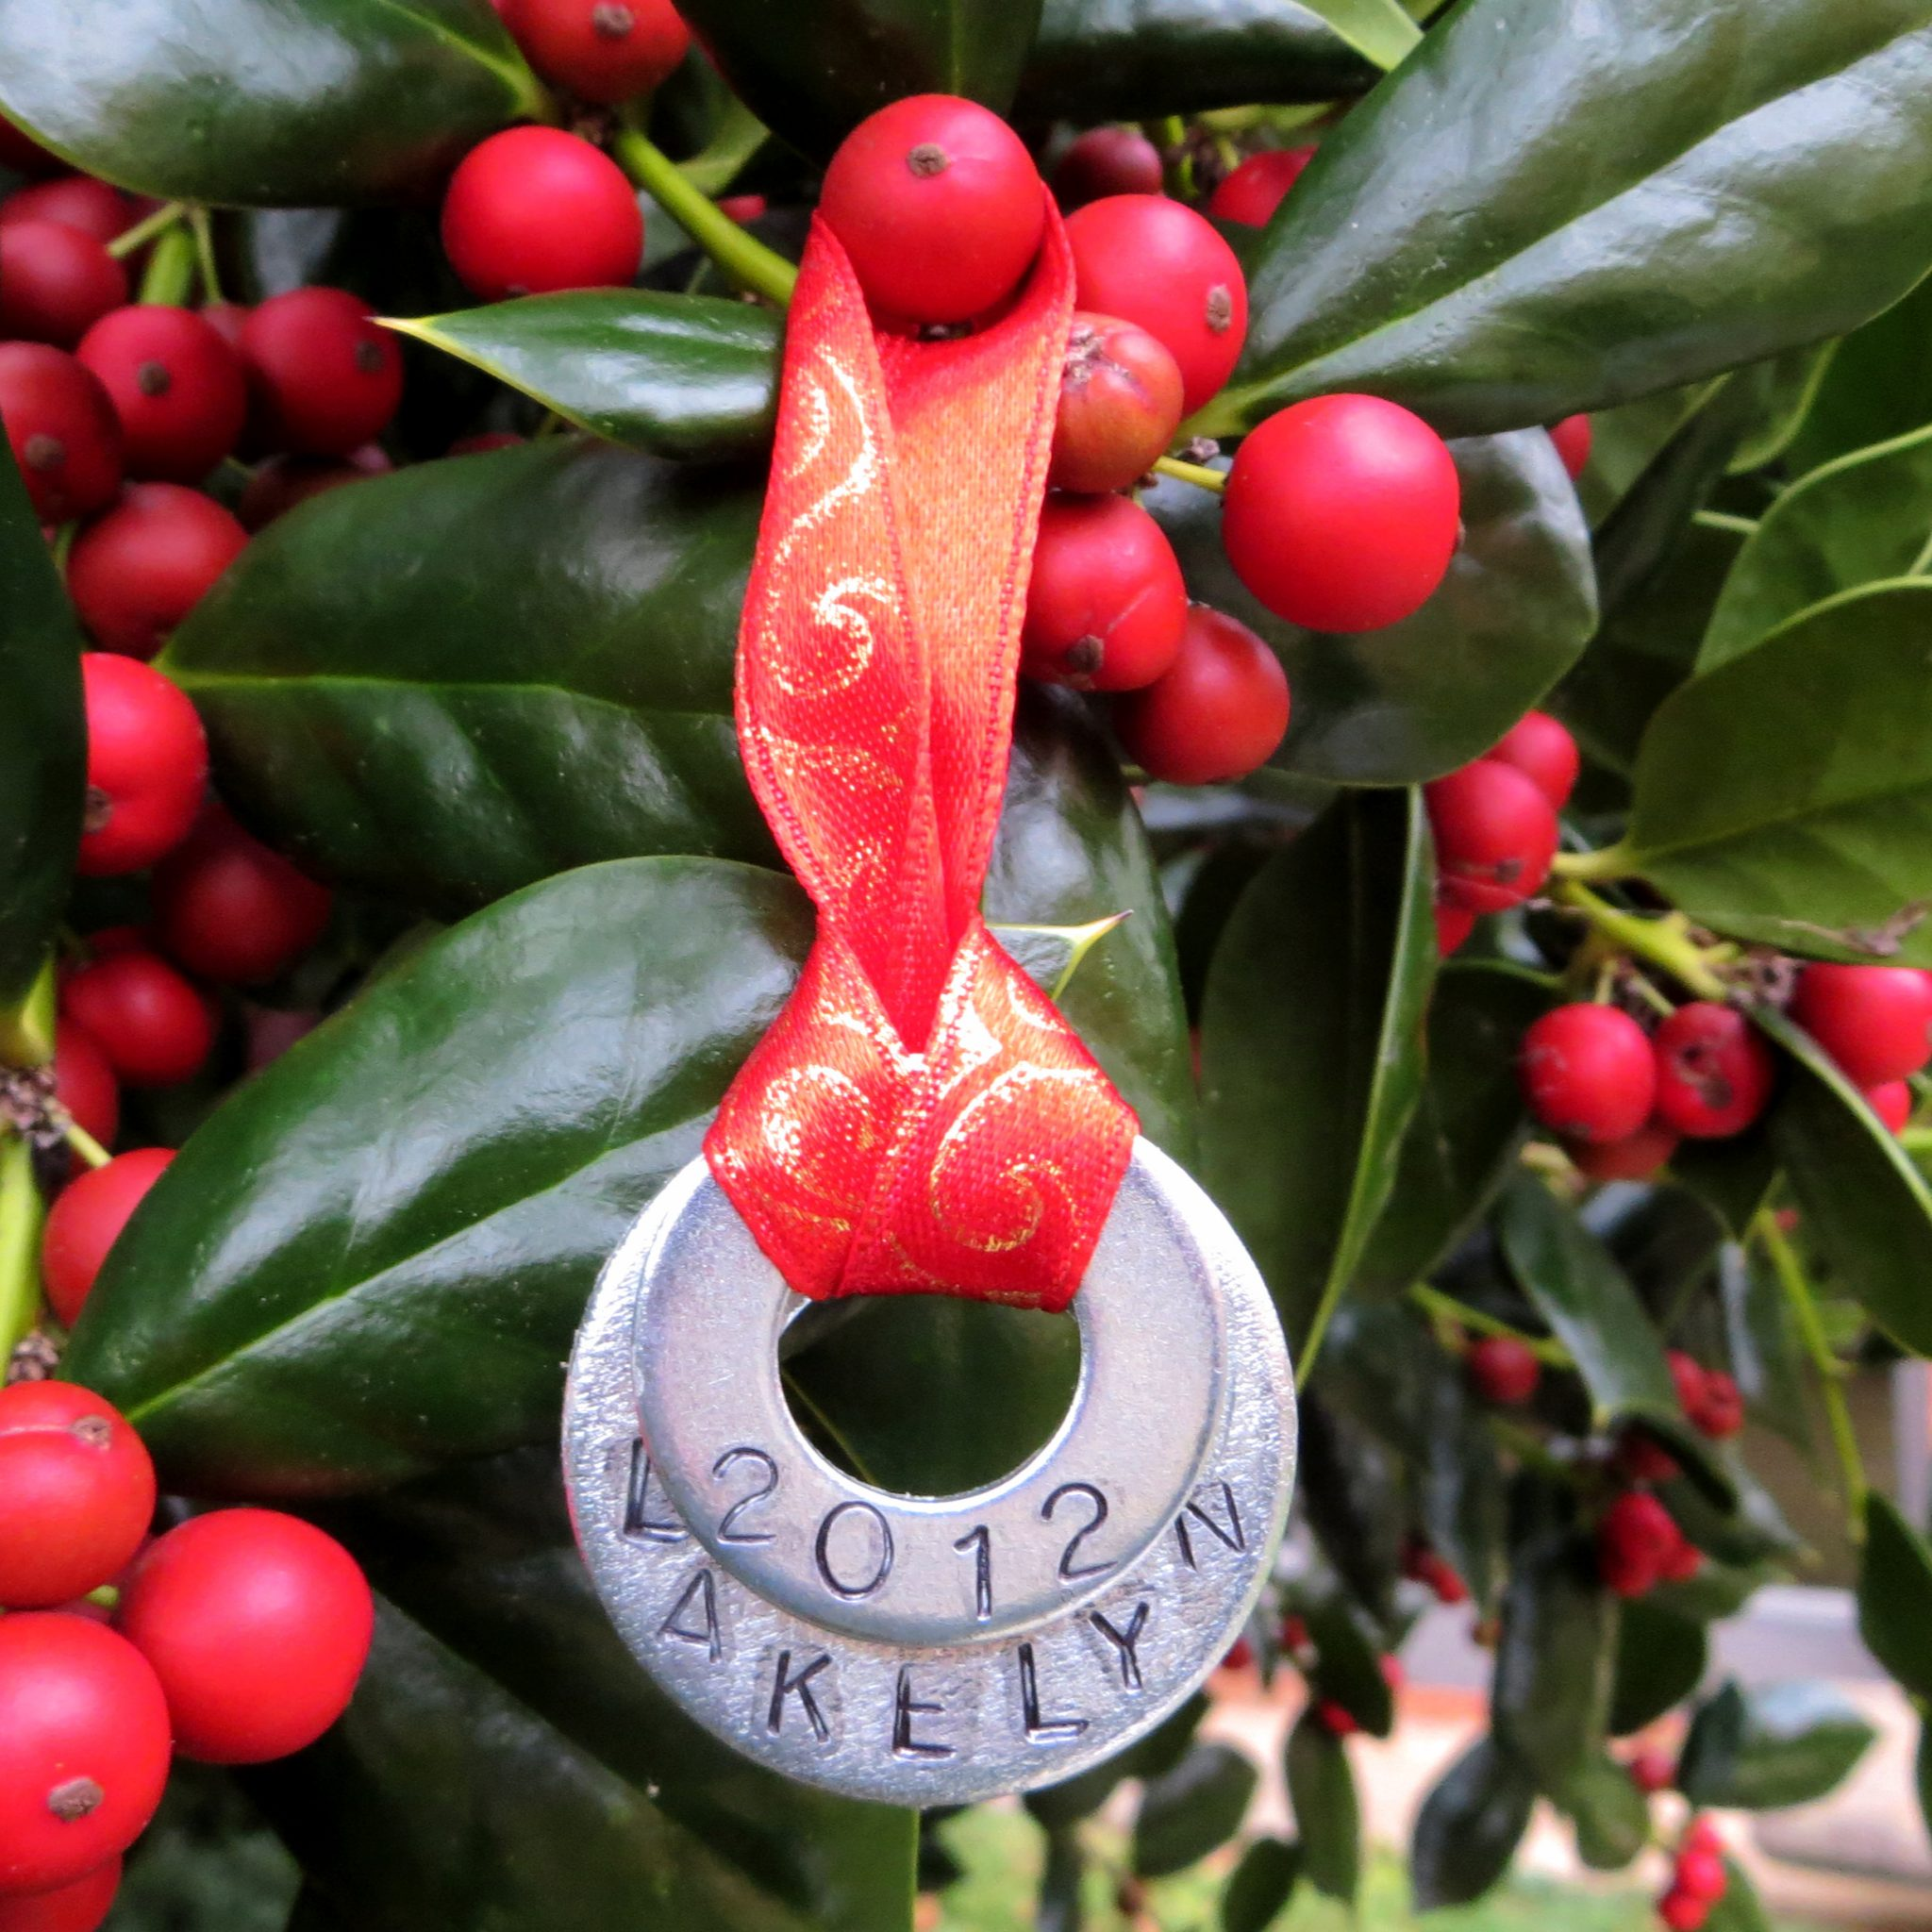 Christmas ornament made with stamped metal washers layered together.